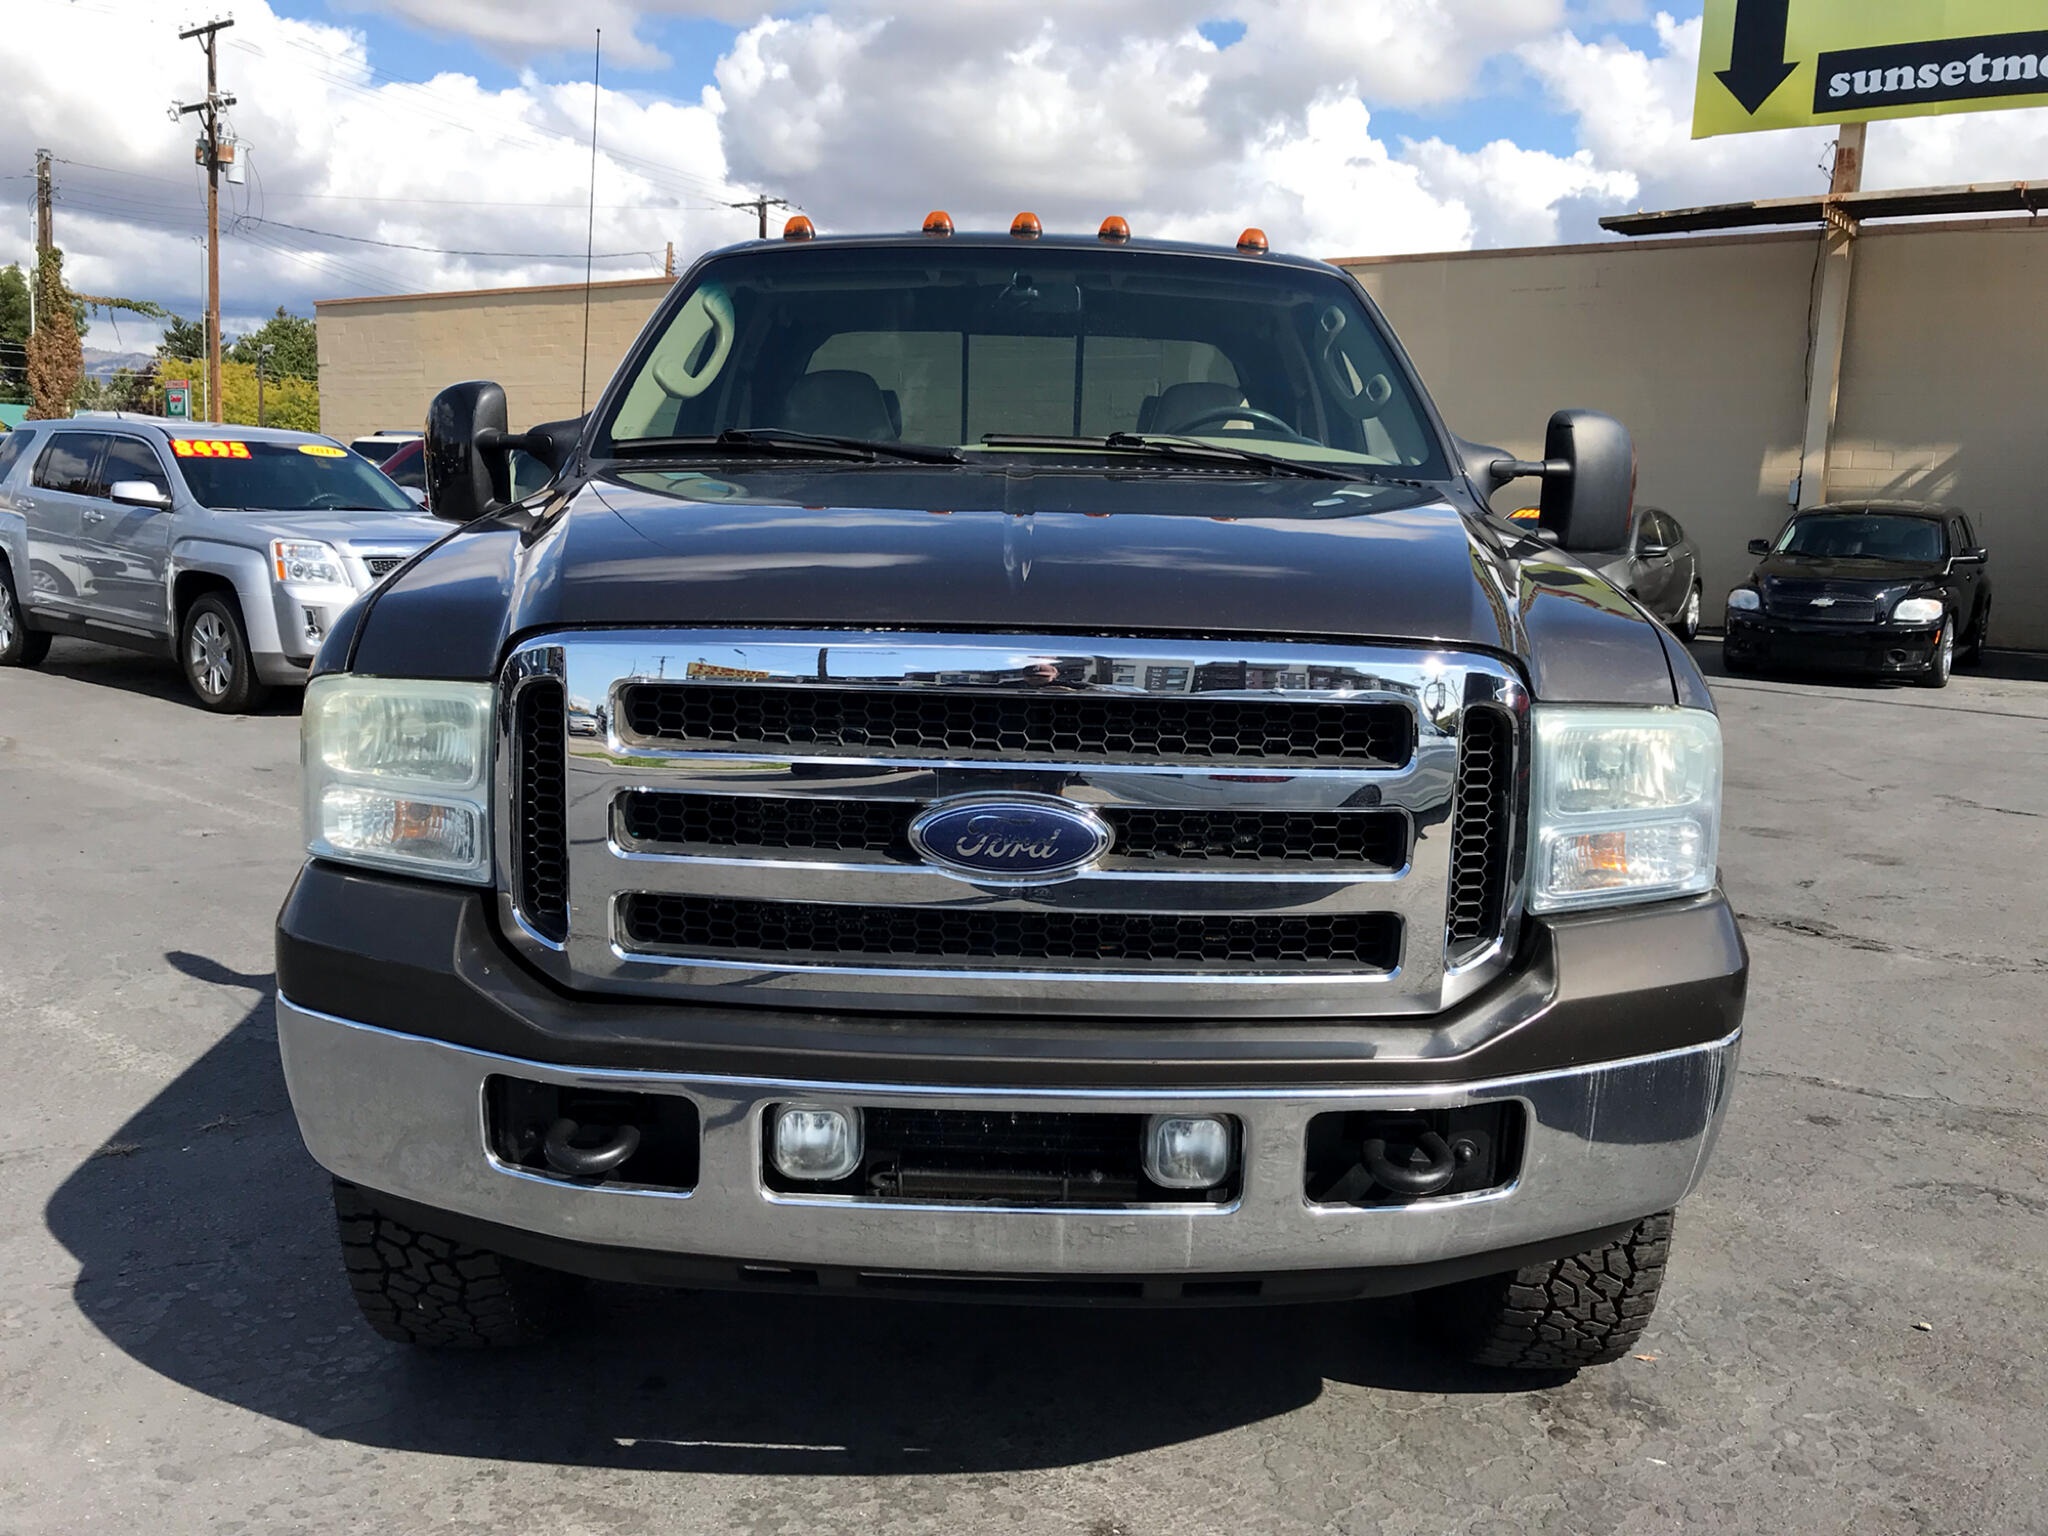 2006 Ford Super Duty F-350 SRW 4WD Crew Cab 156